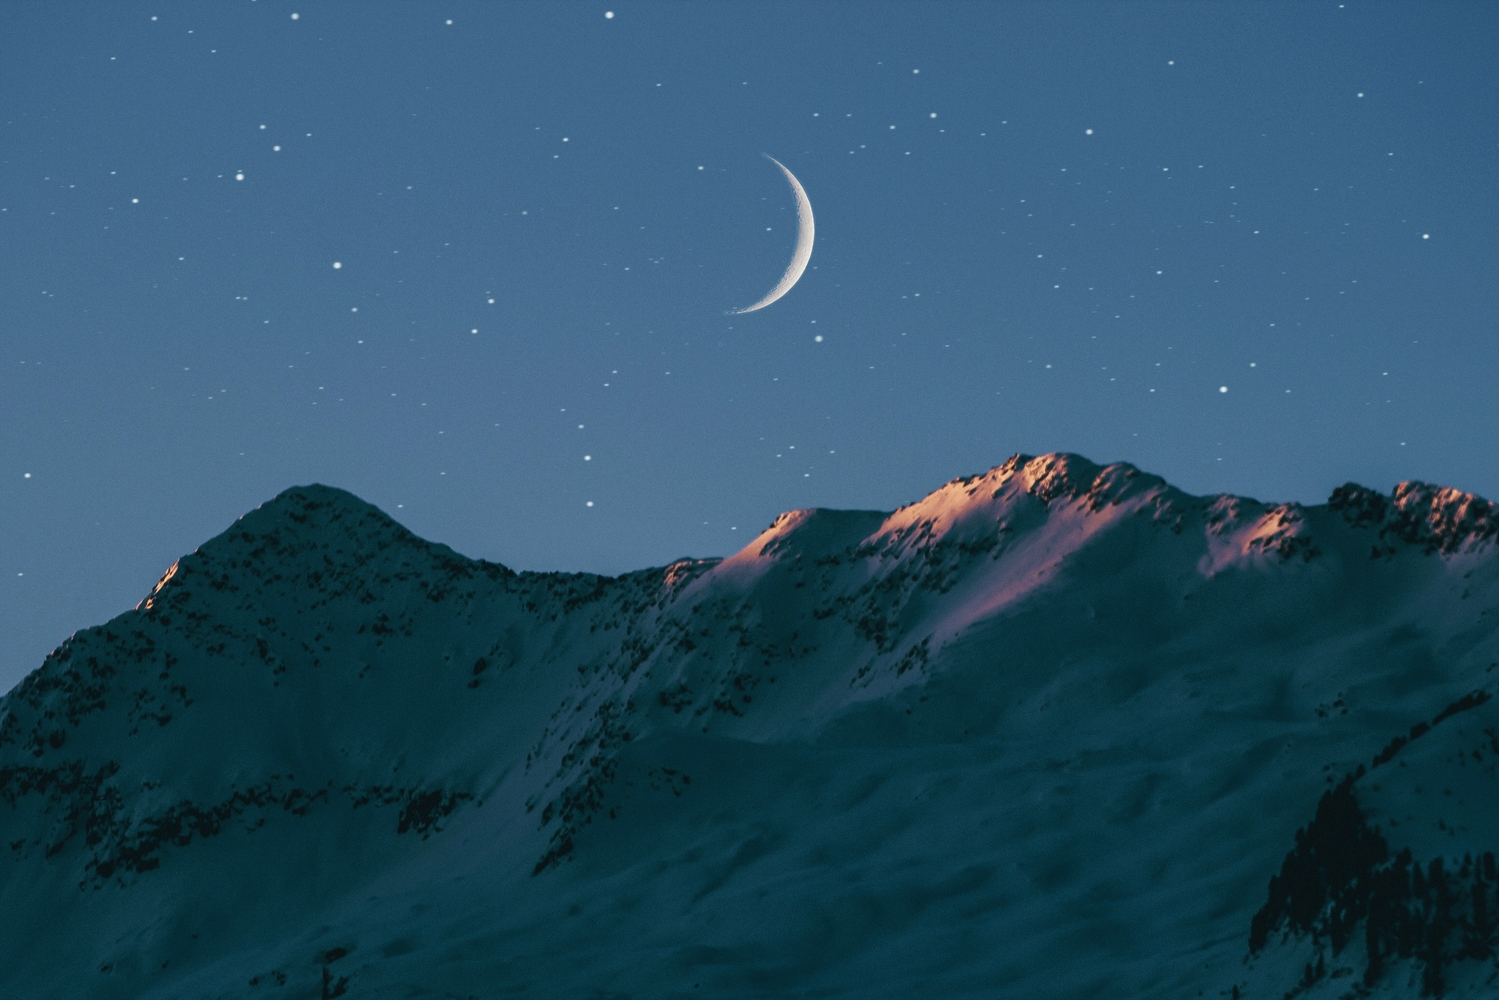 Crescent moon over mountain range